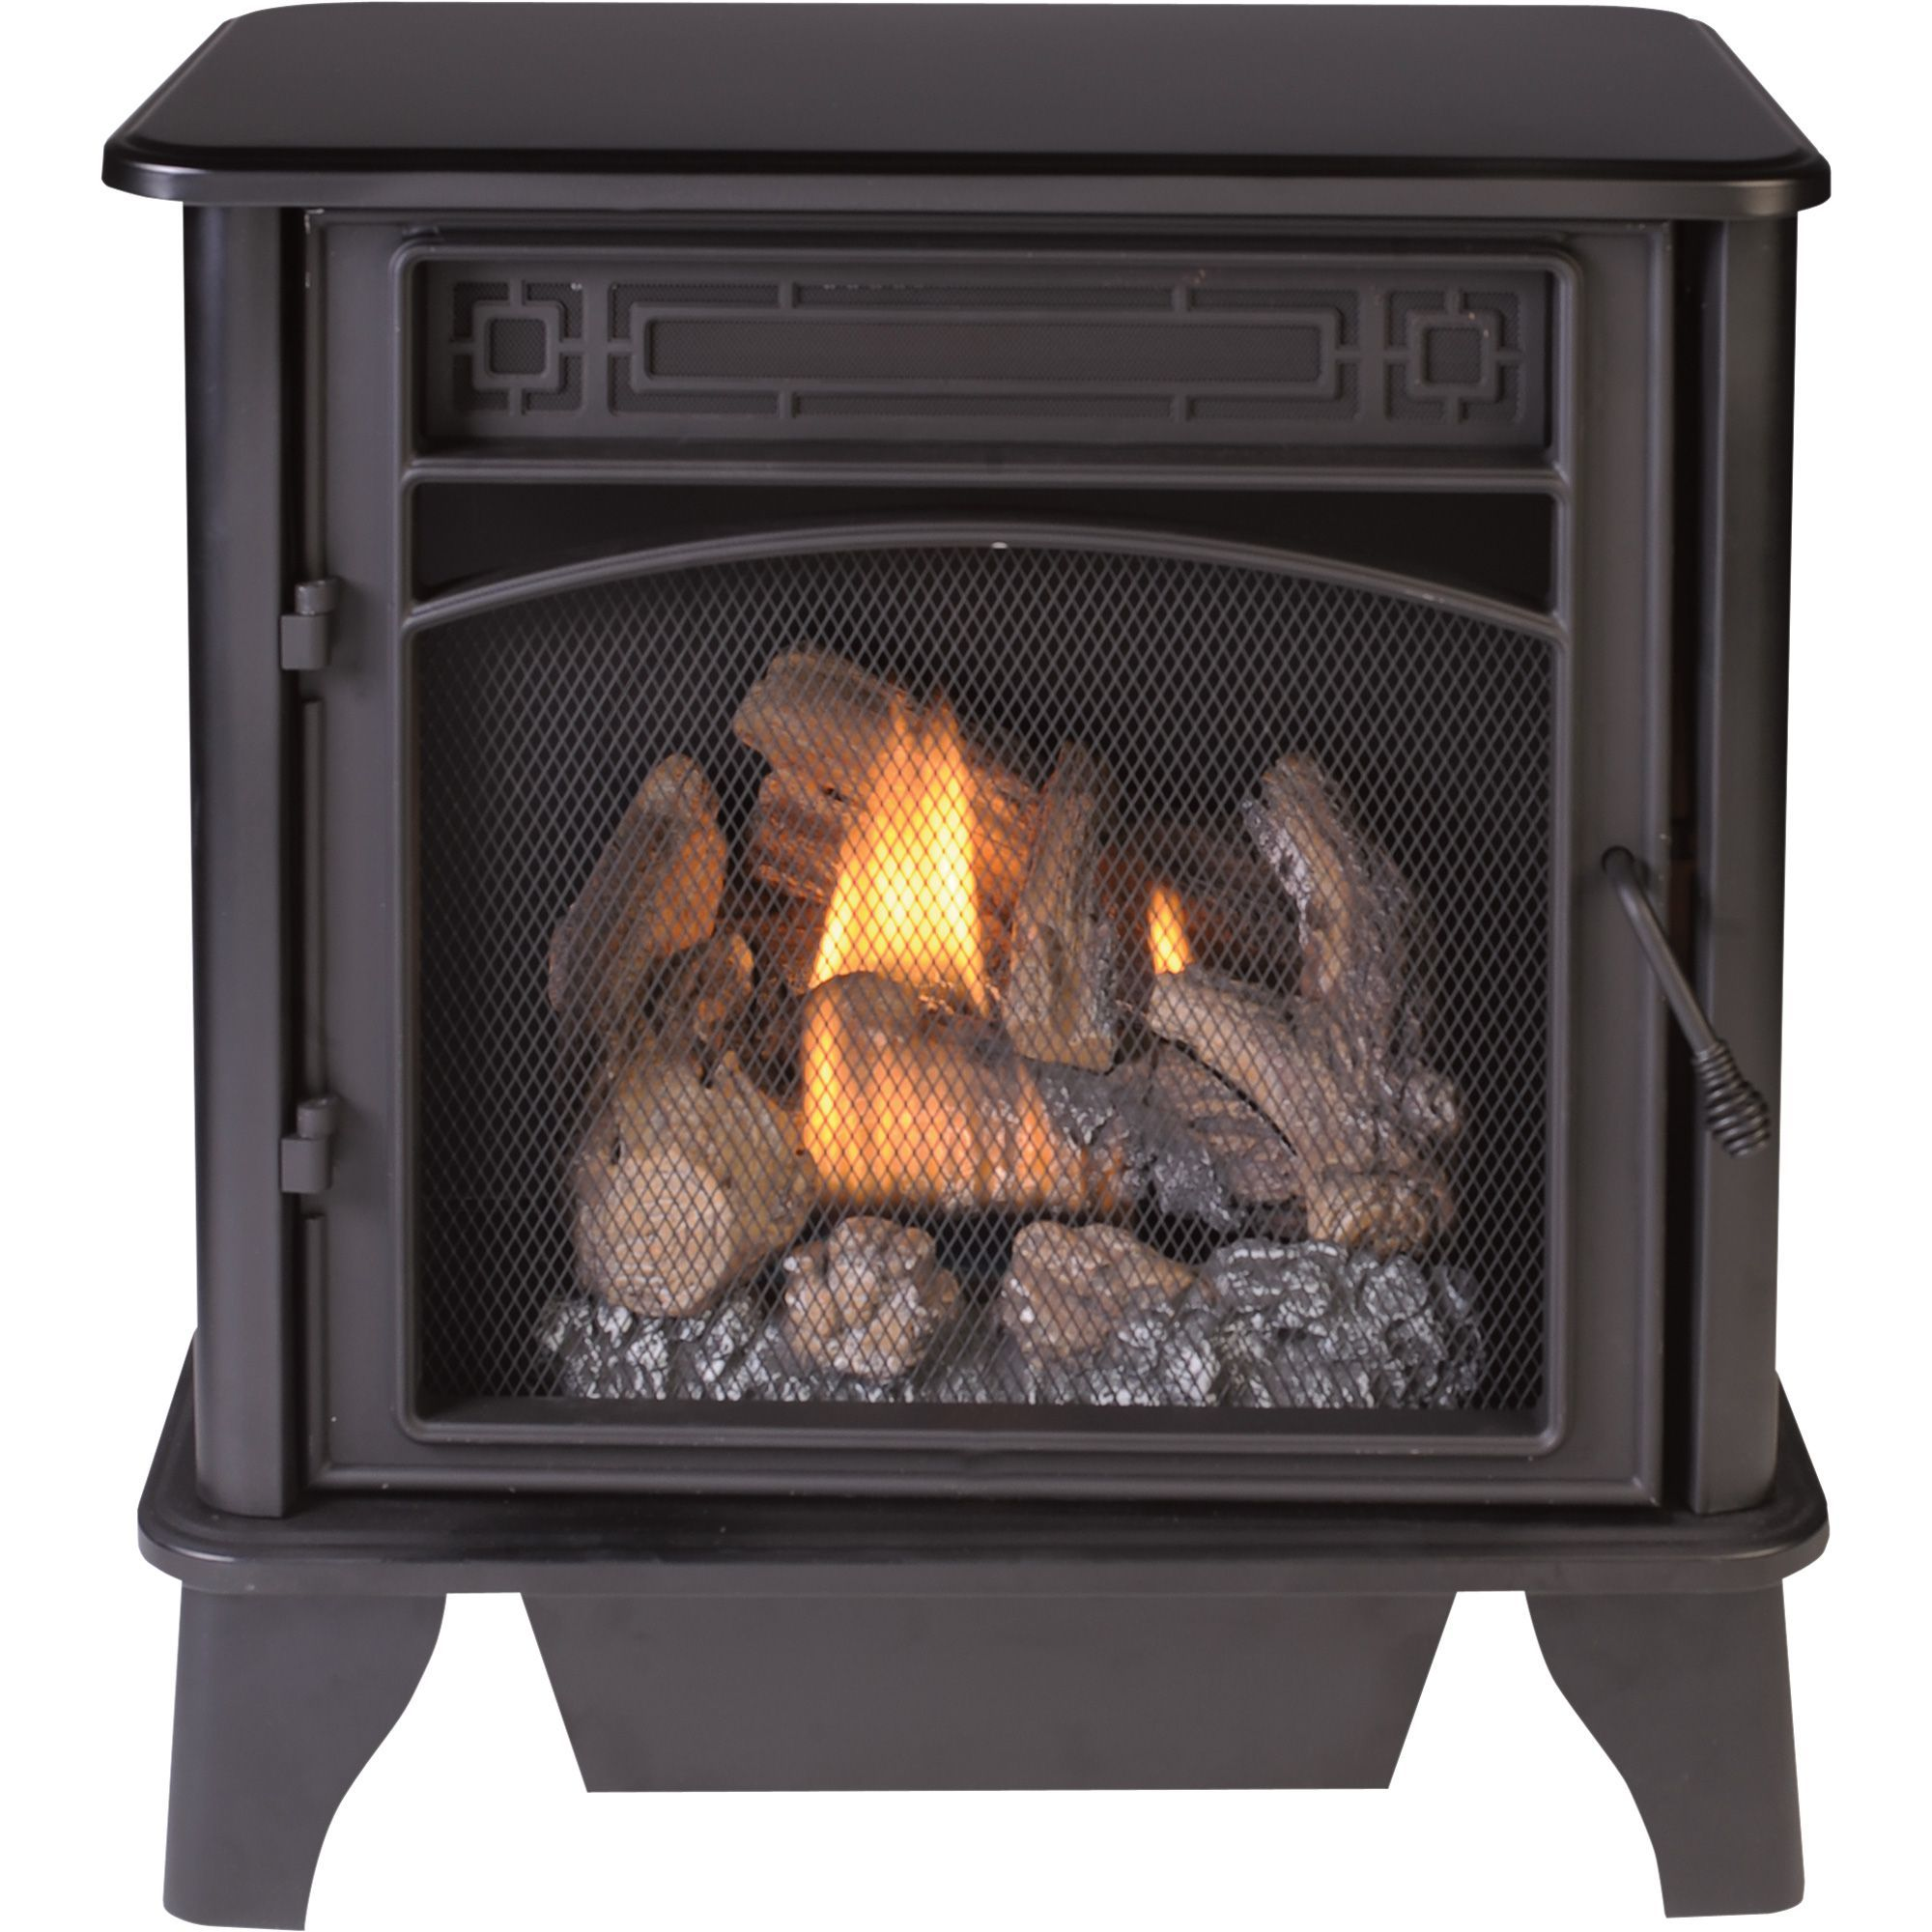 This Procom Dual Fuel Vent Free Stove Provides A Combination Of